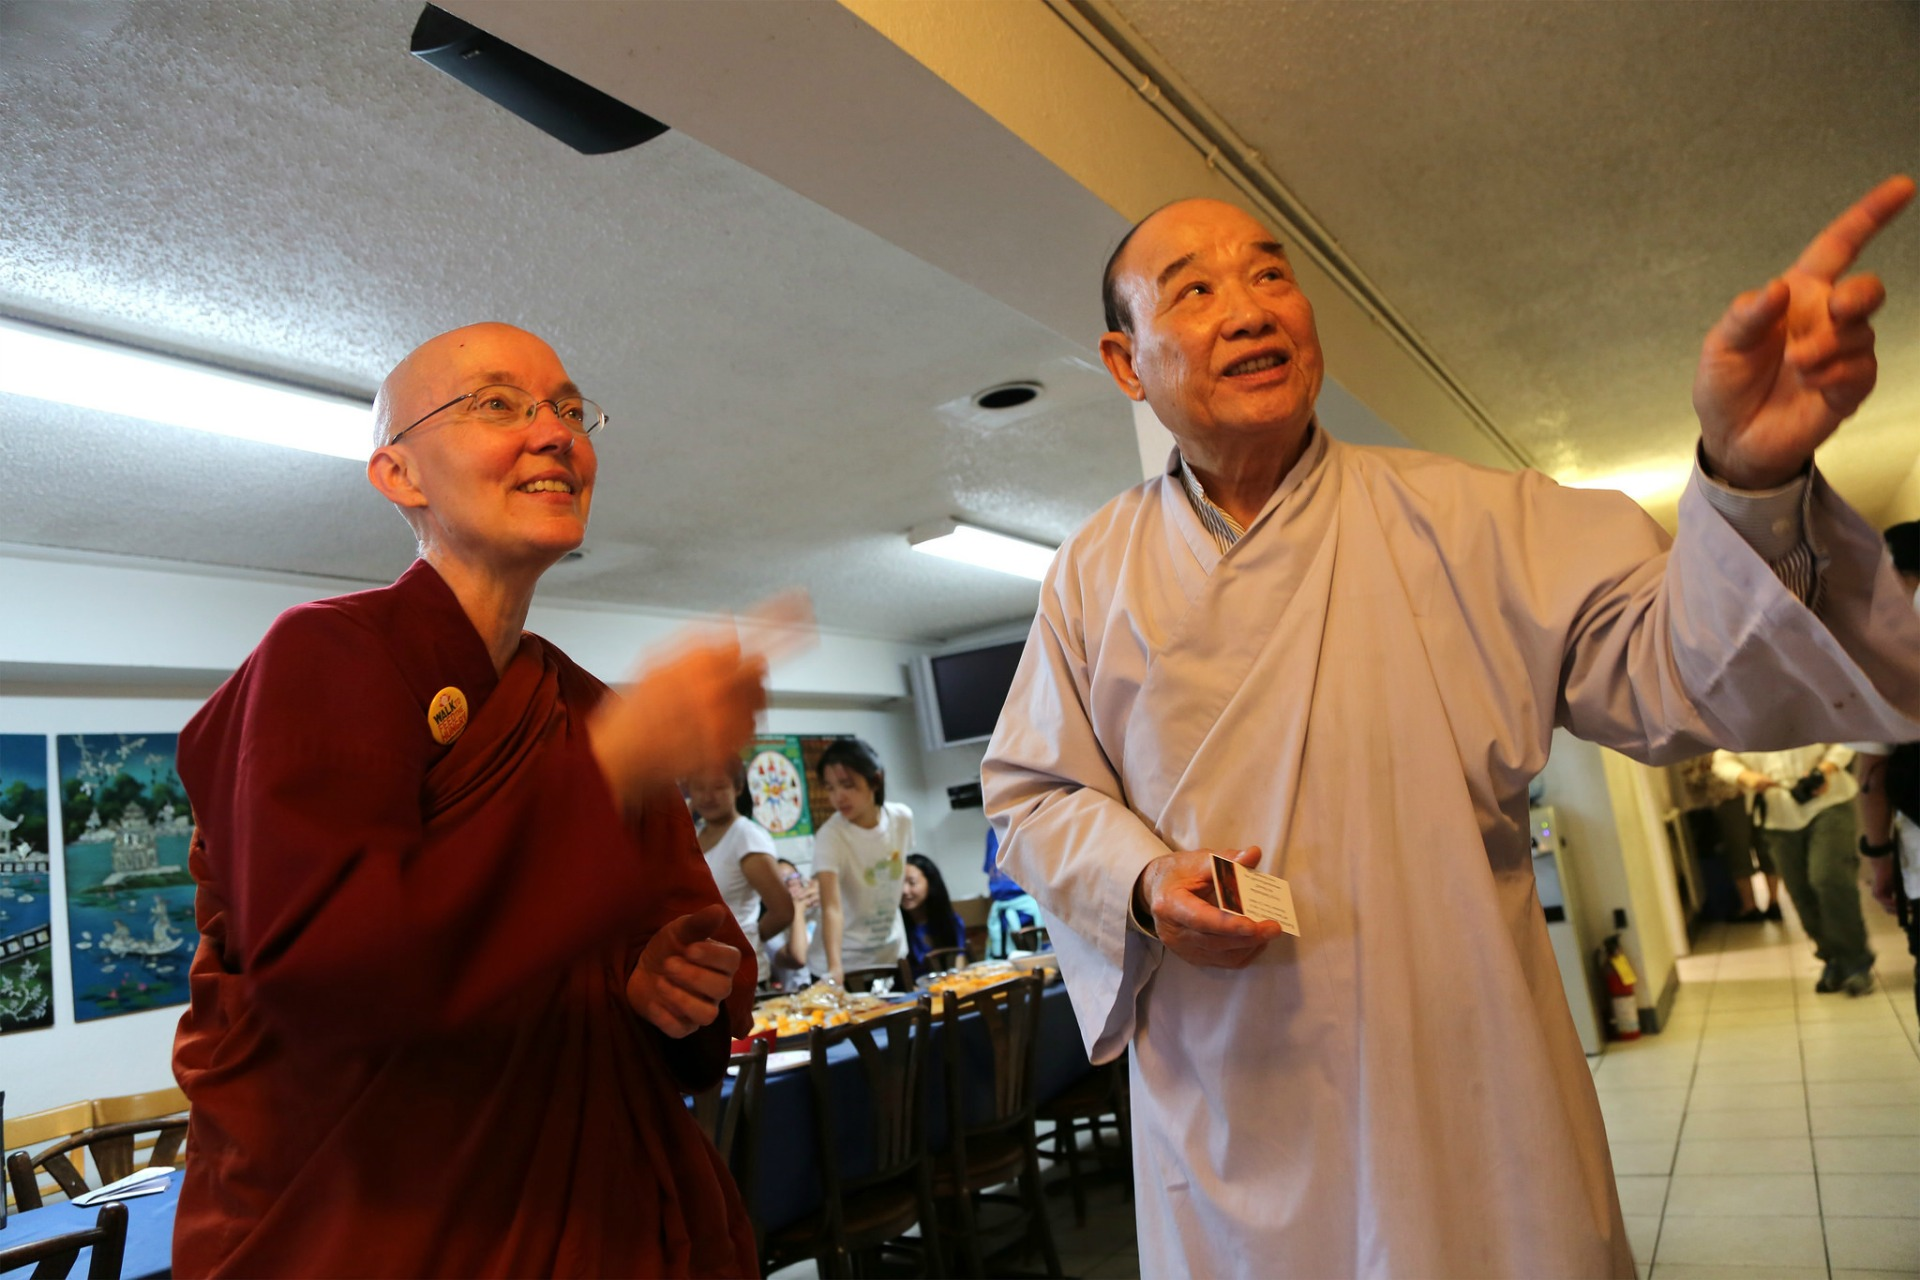 At Từ Quang Temple, walk leader Ayya Santussika Bhikkhuni talks to one of the original temple founders, Minh Huynh